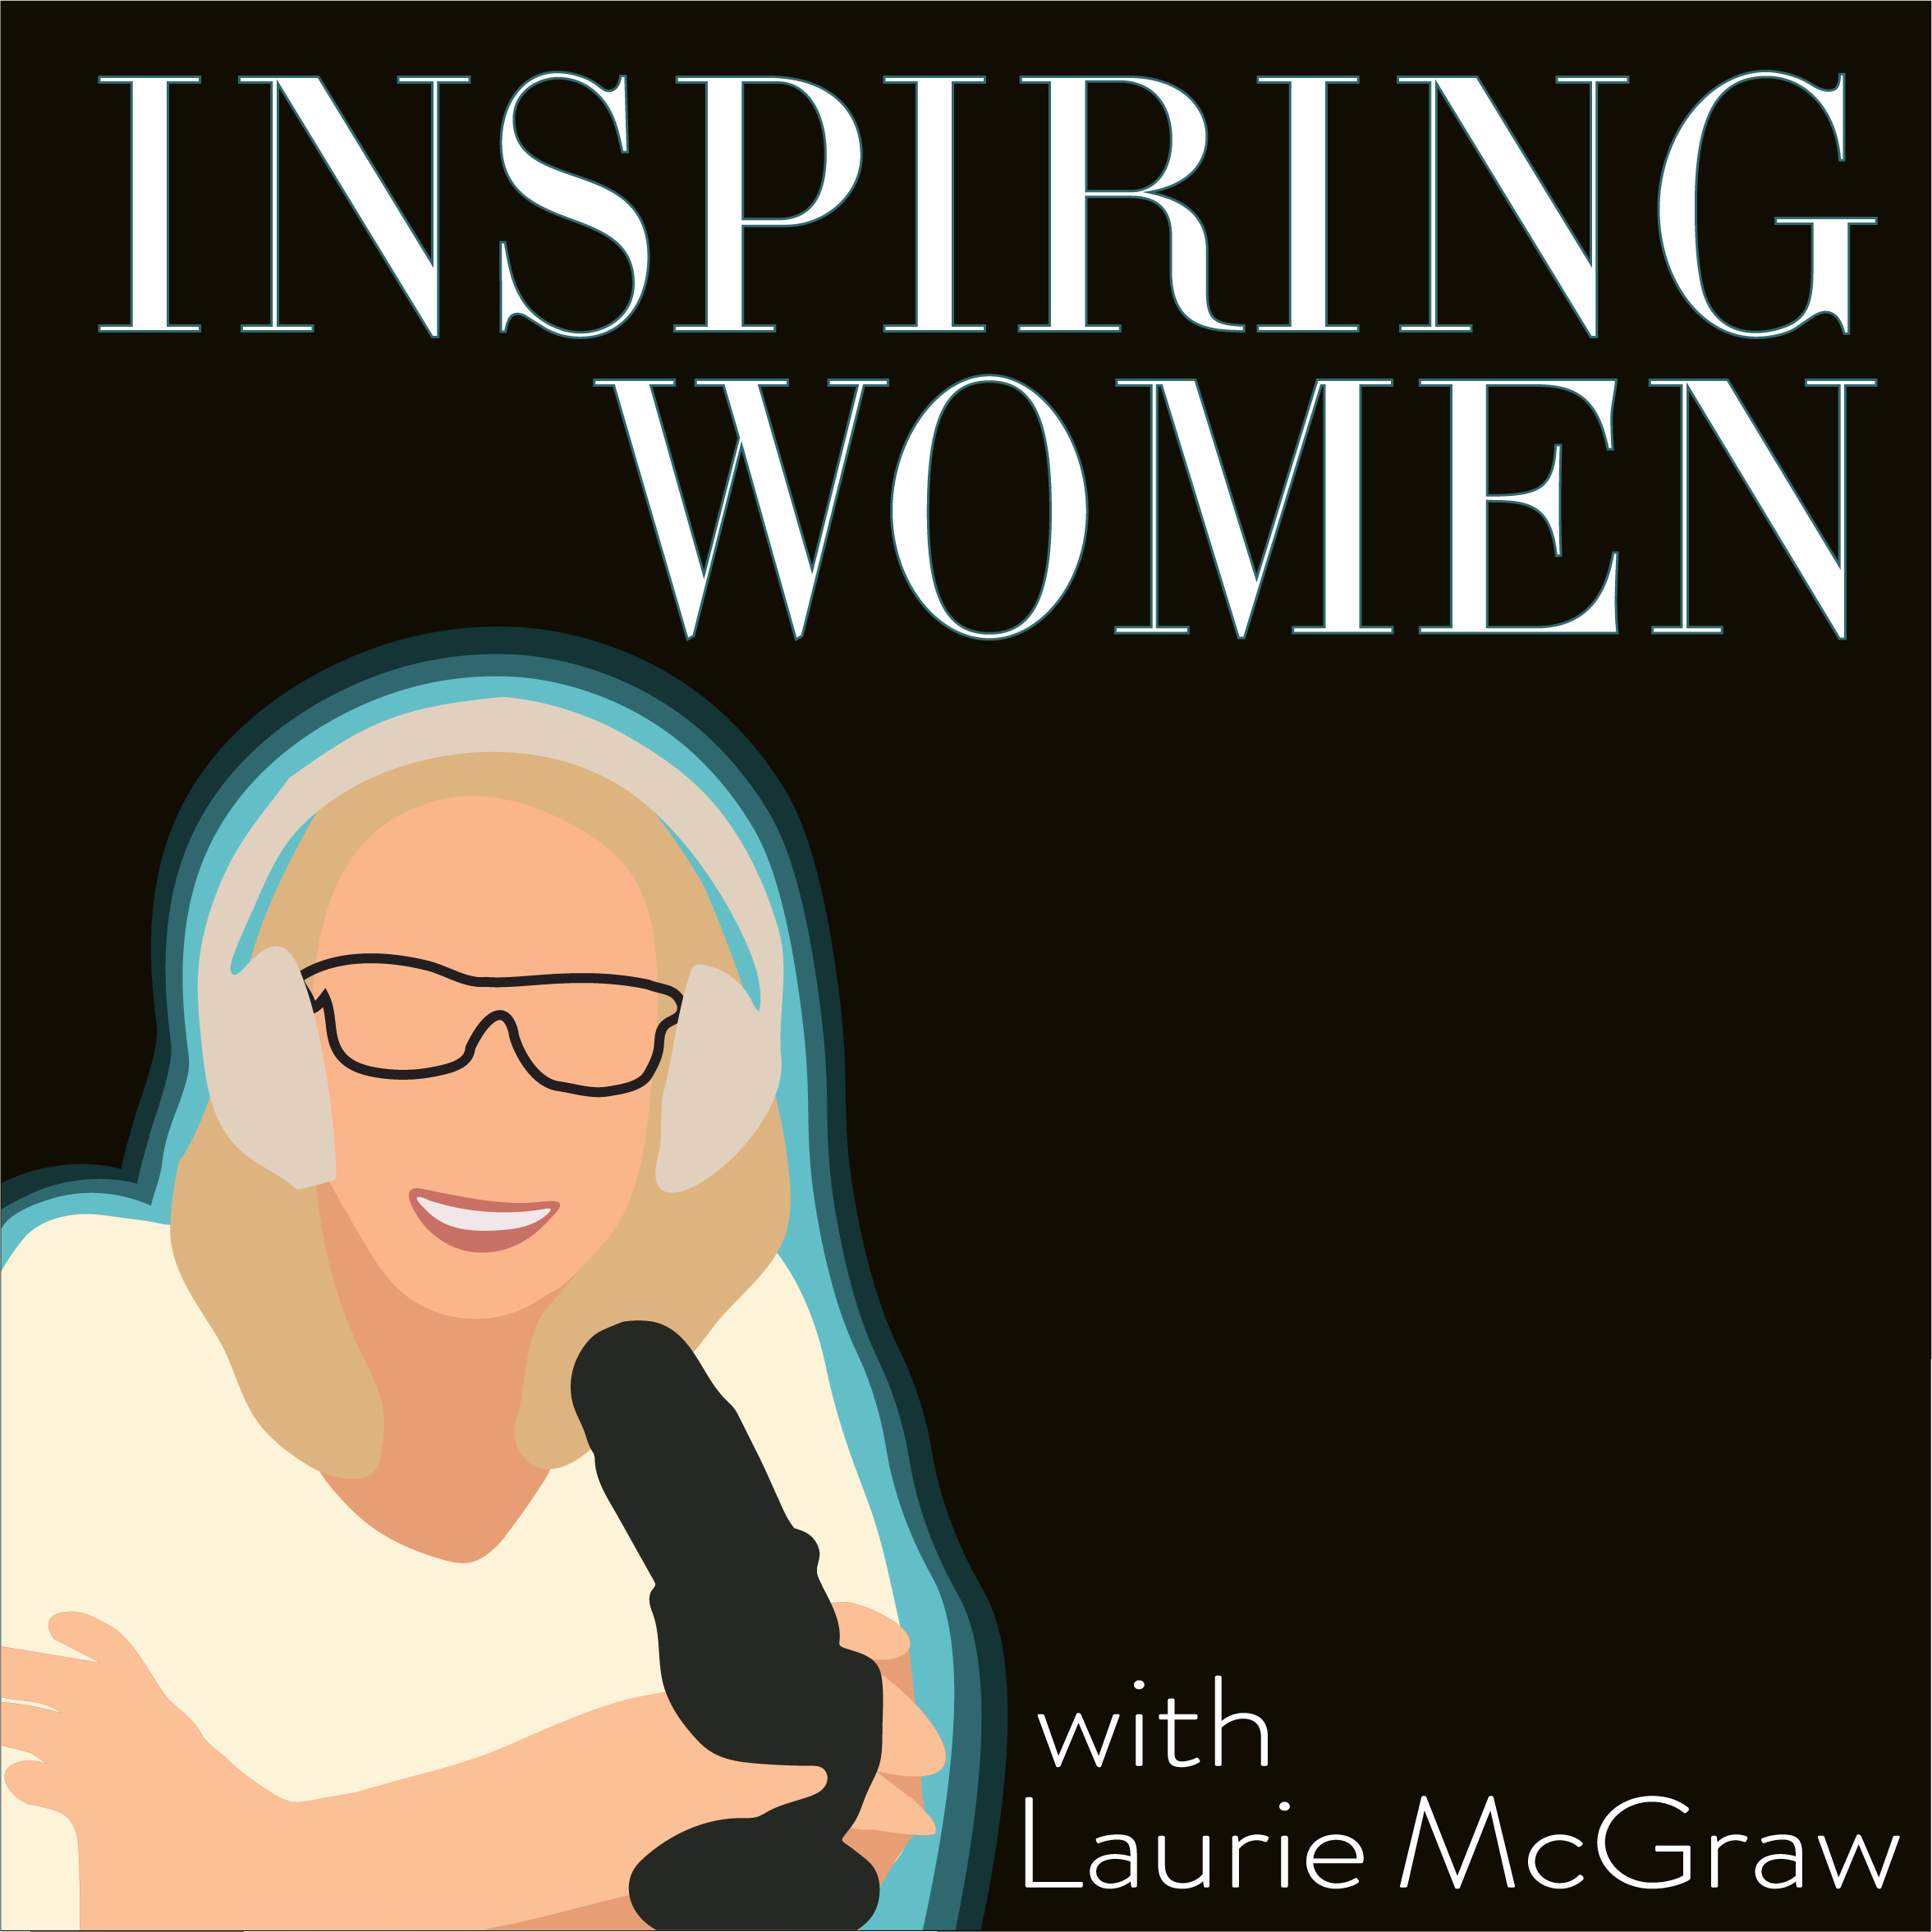 Inspiring Women with Laurie McGraw